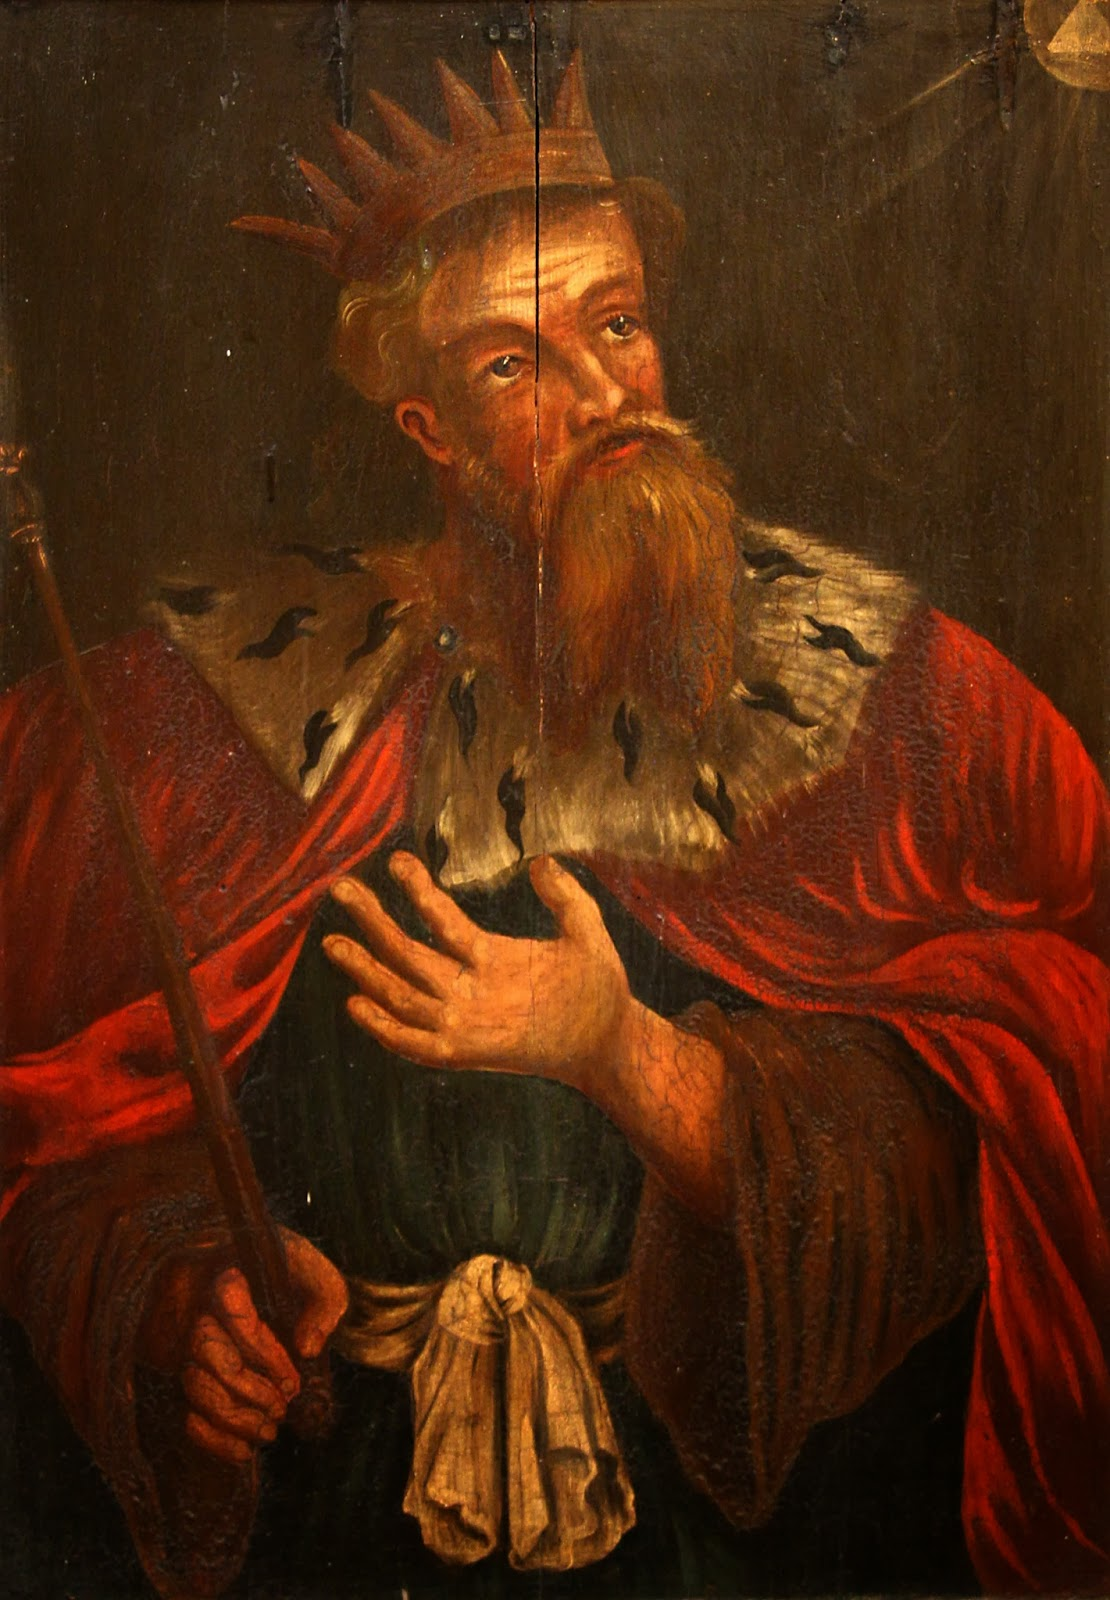 King Hezekiah on a 17th-century painting